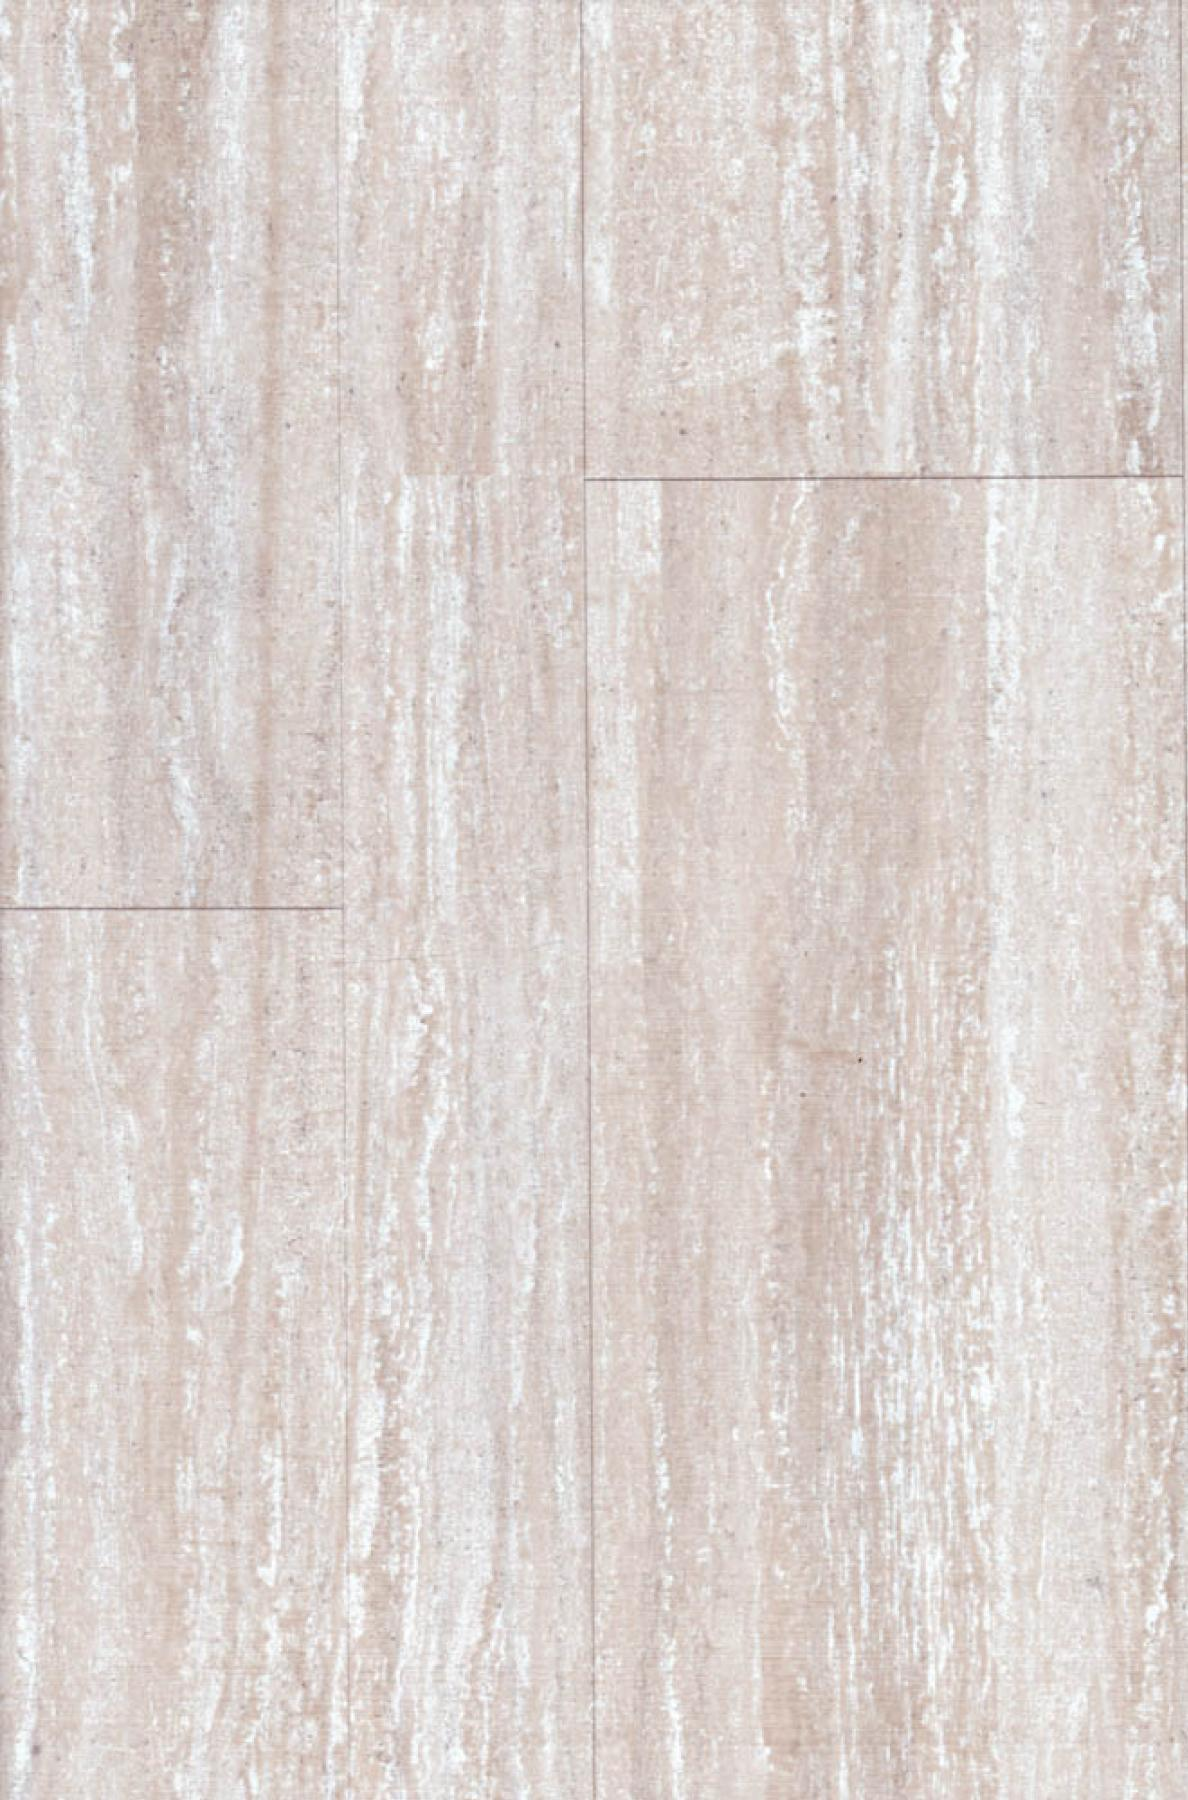 Marbrex taupe dune wall panel 3 lengths per pack dc60c47 ja seals - Wall taupe ...